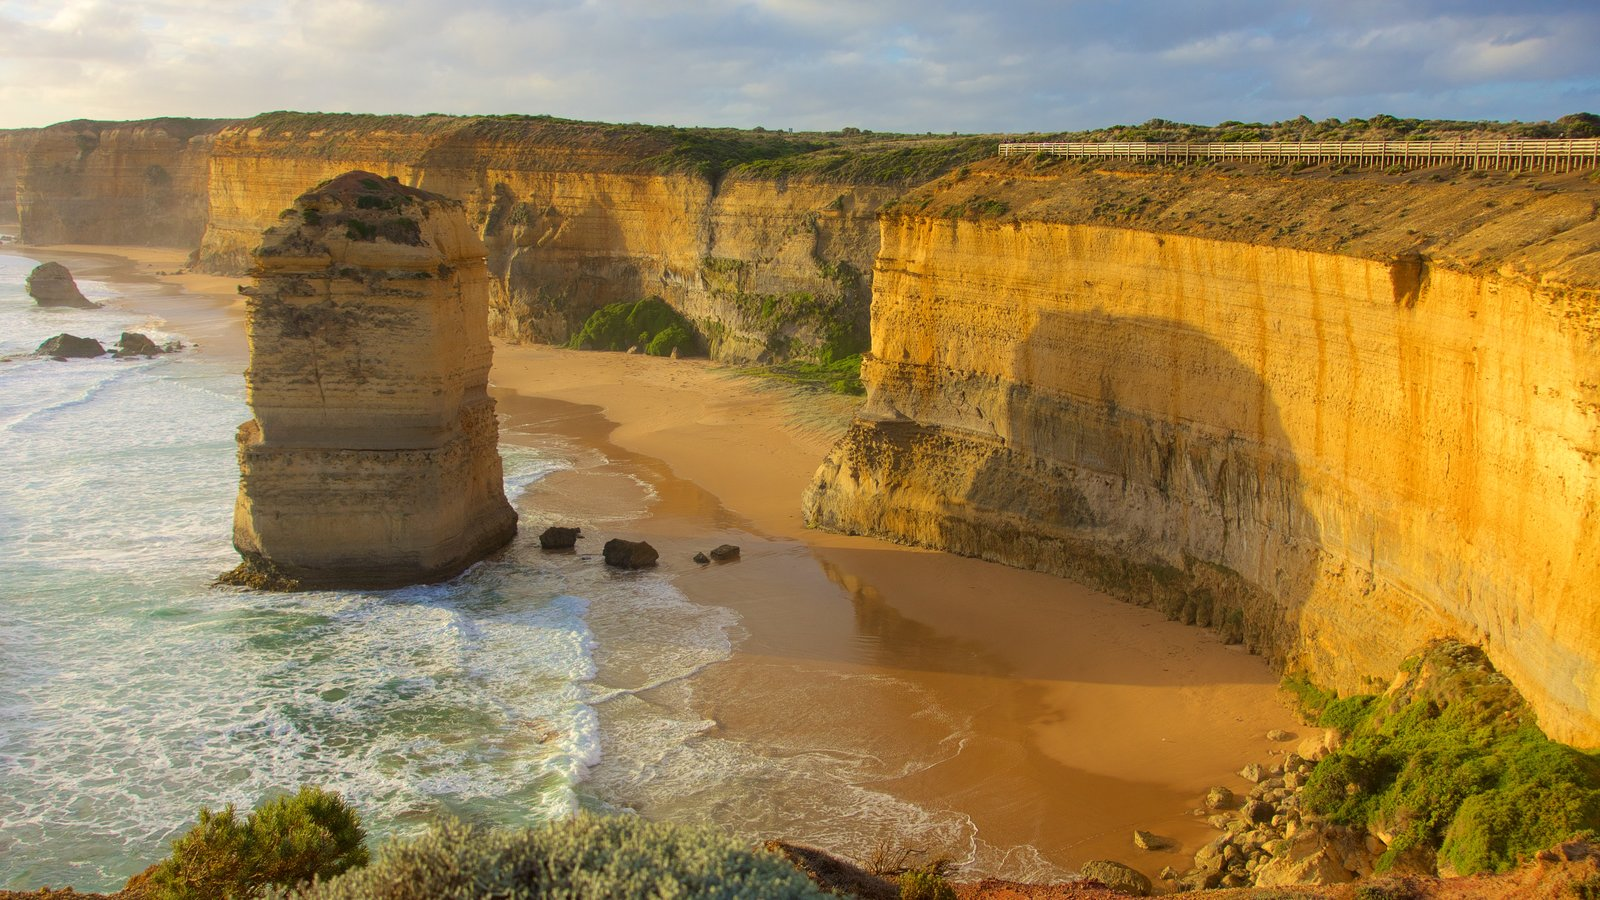 Twelve Apostles showing rugged coastline, a gorge or canyon and a sunset